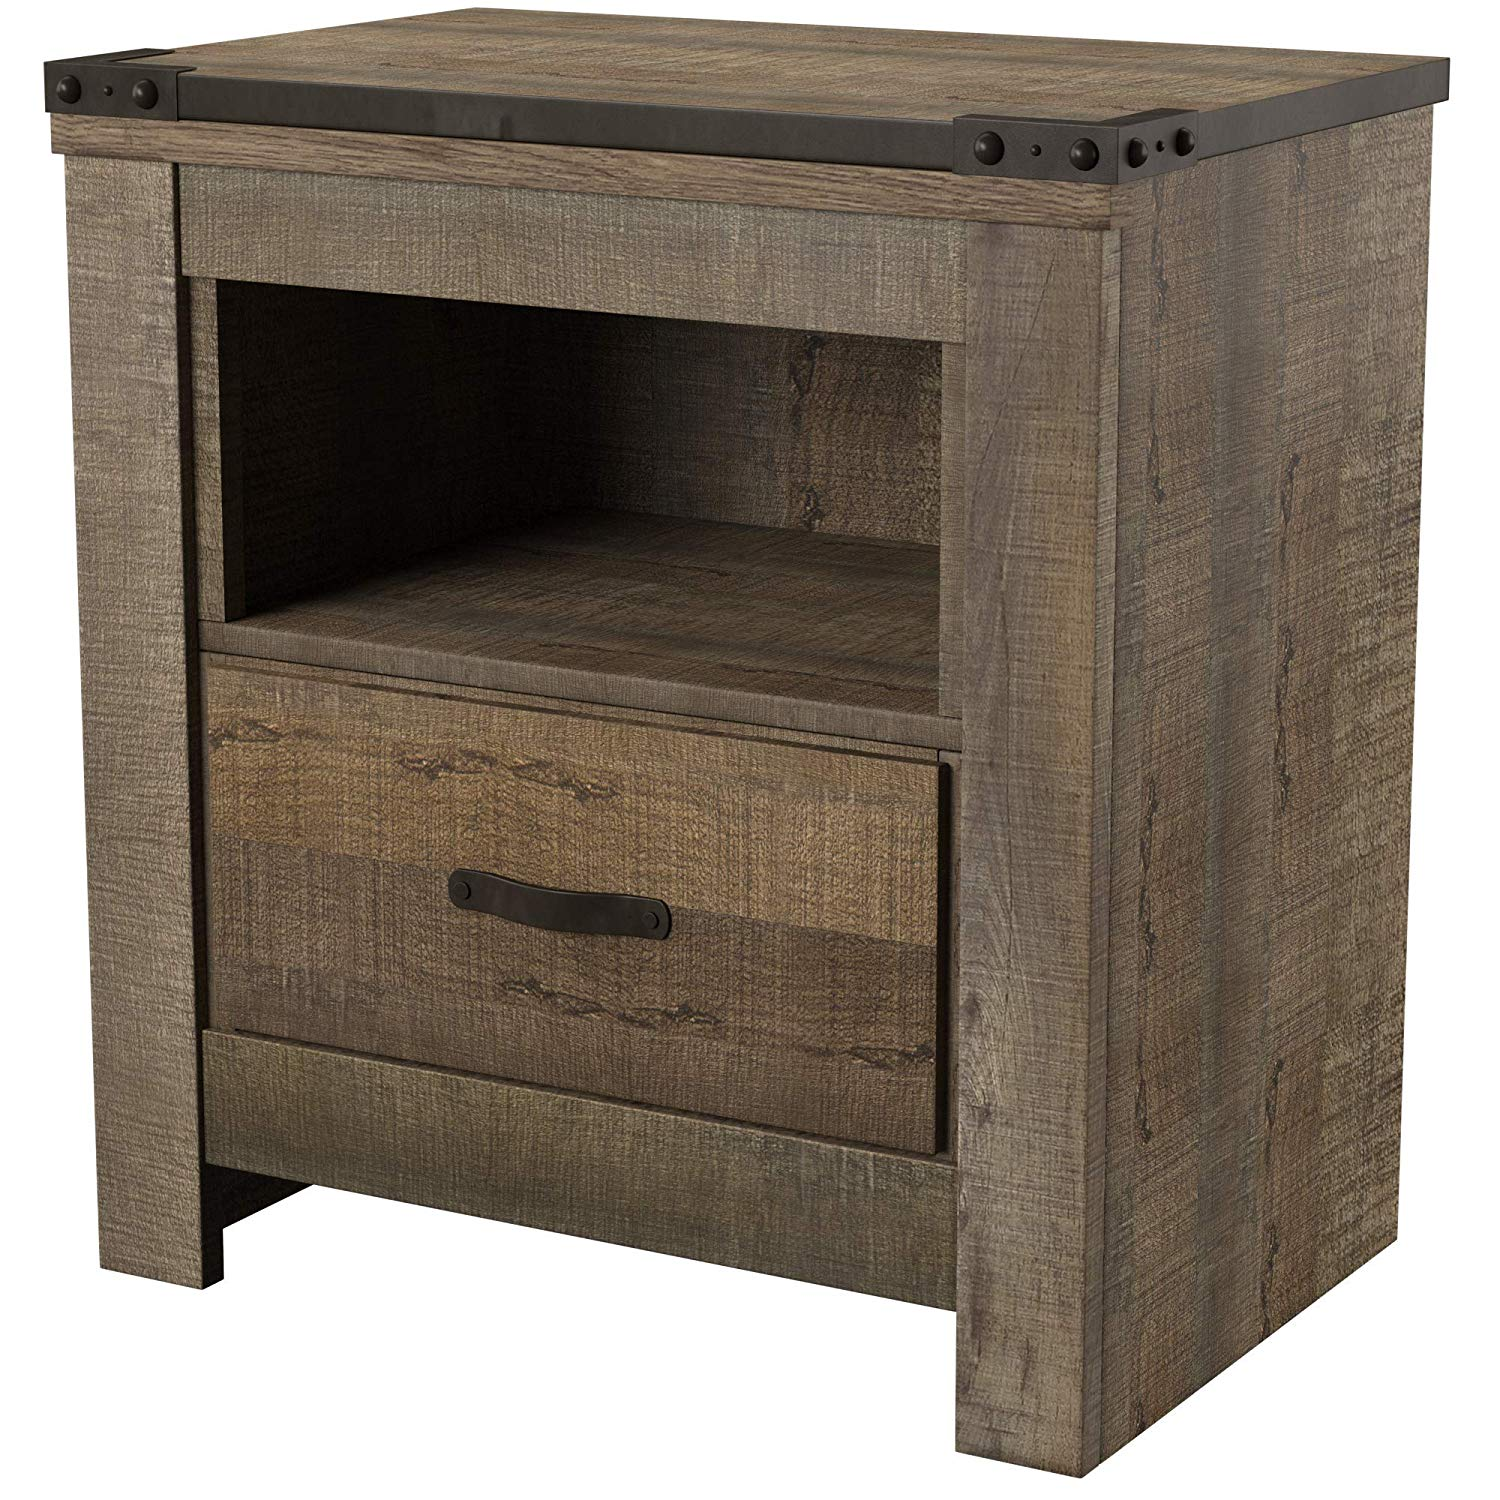 ashley furniture signature design trinell warm rustic hpmmpbnl bedroom end tables nightstand casual master table brown kitchen dining entrance leather center green outdoor side